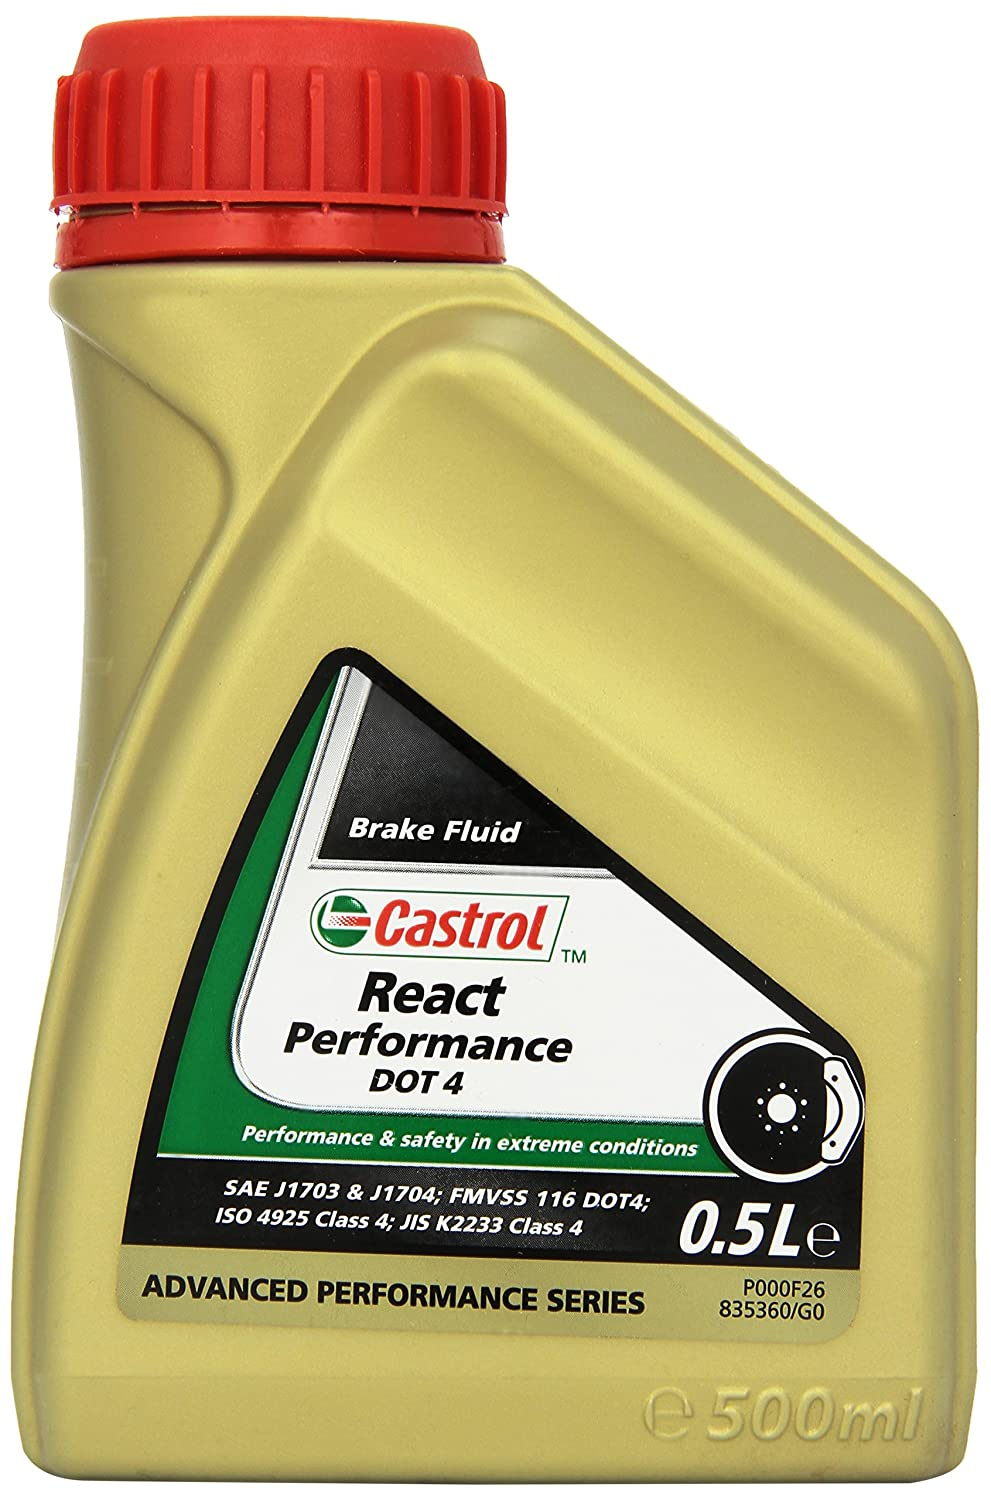 Castrol React Performance DOT 4 Liquide de frein, 500mL Castrol Limited 21878